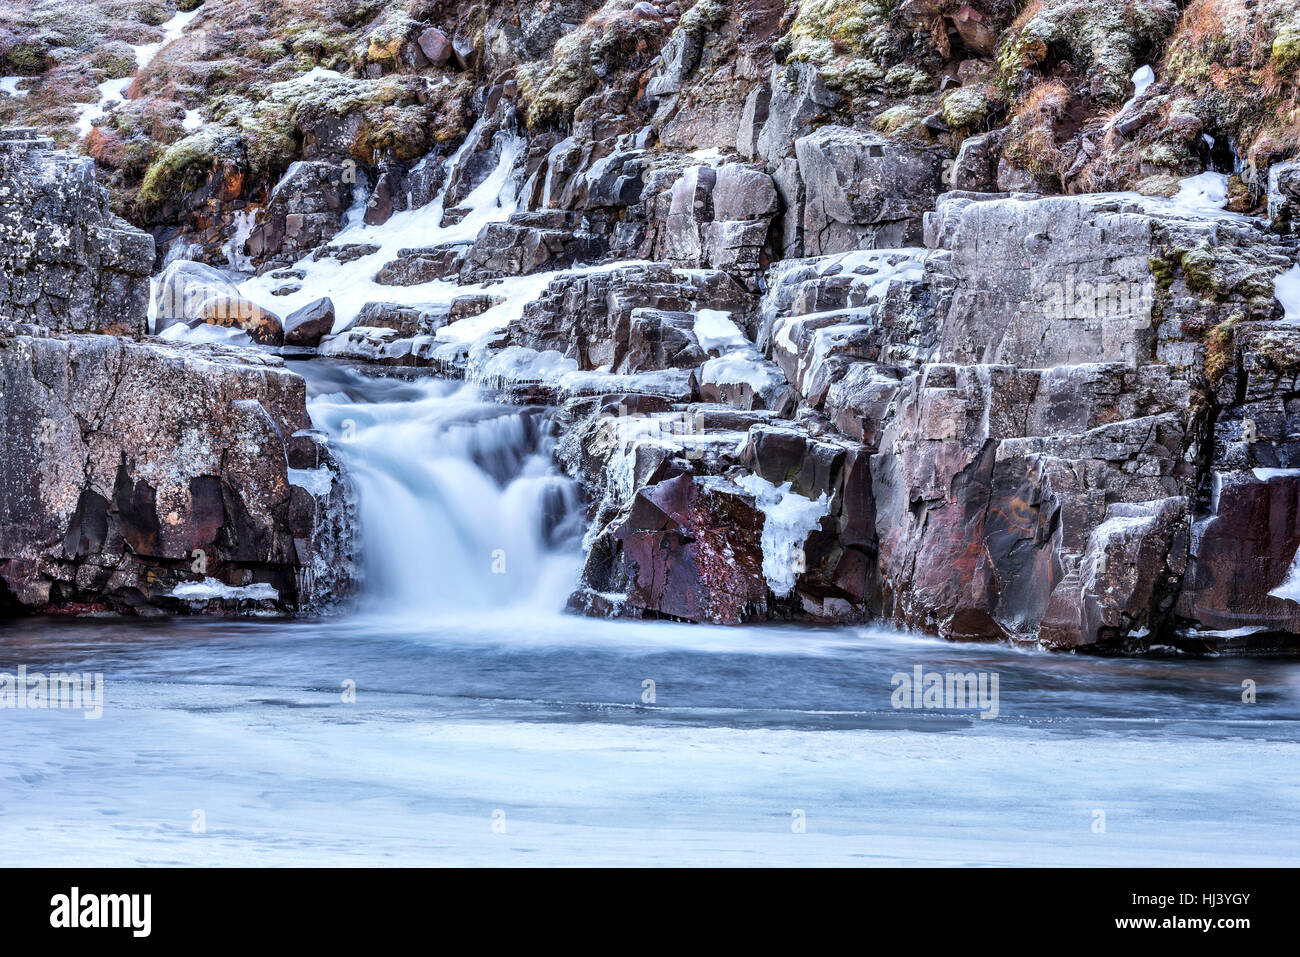 A waterfall surrounded by ice and snow in the highlands of Iceland framed rugged terrain offers scenic landscape - Stock Image